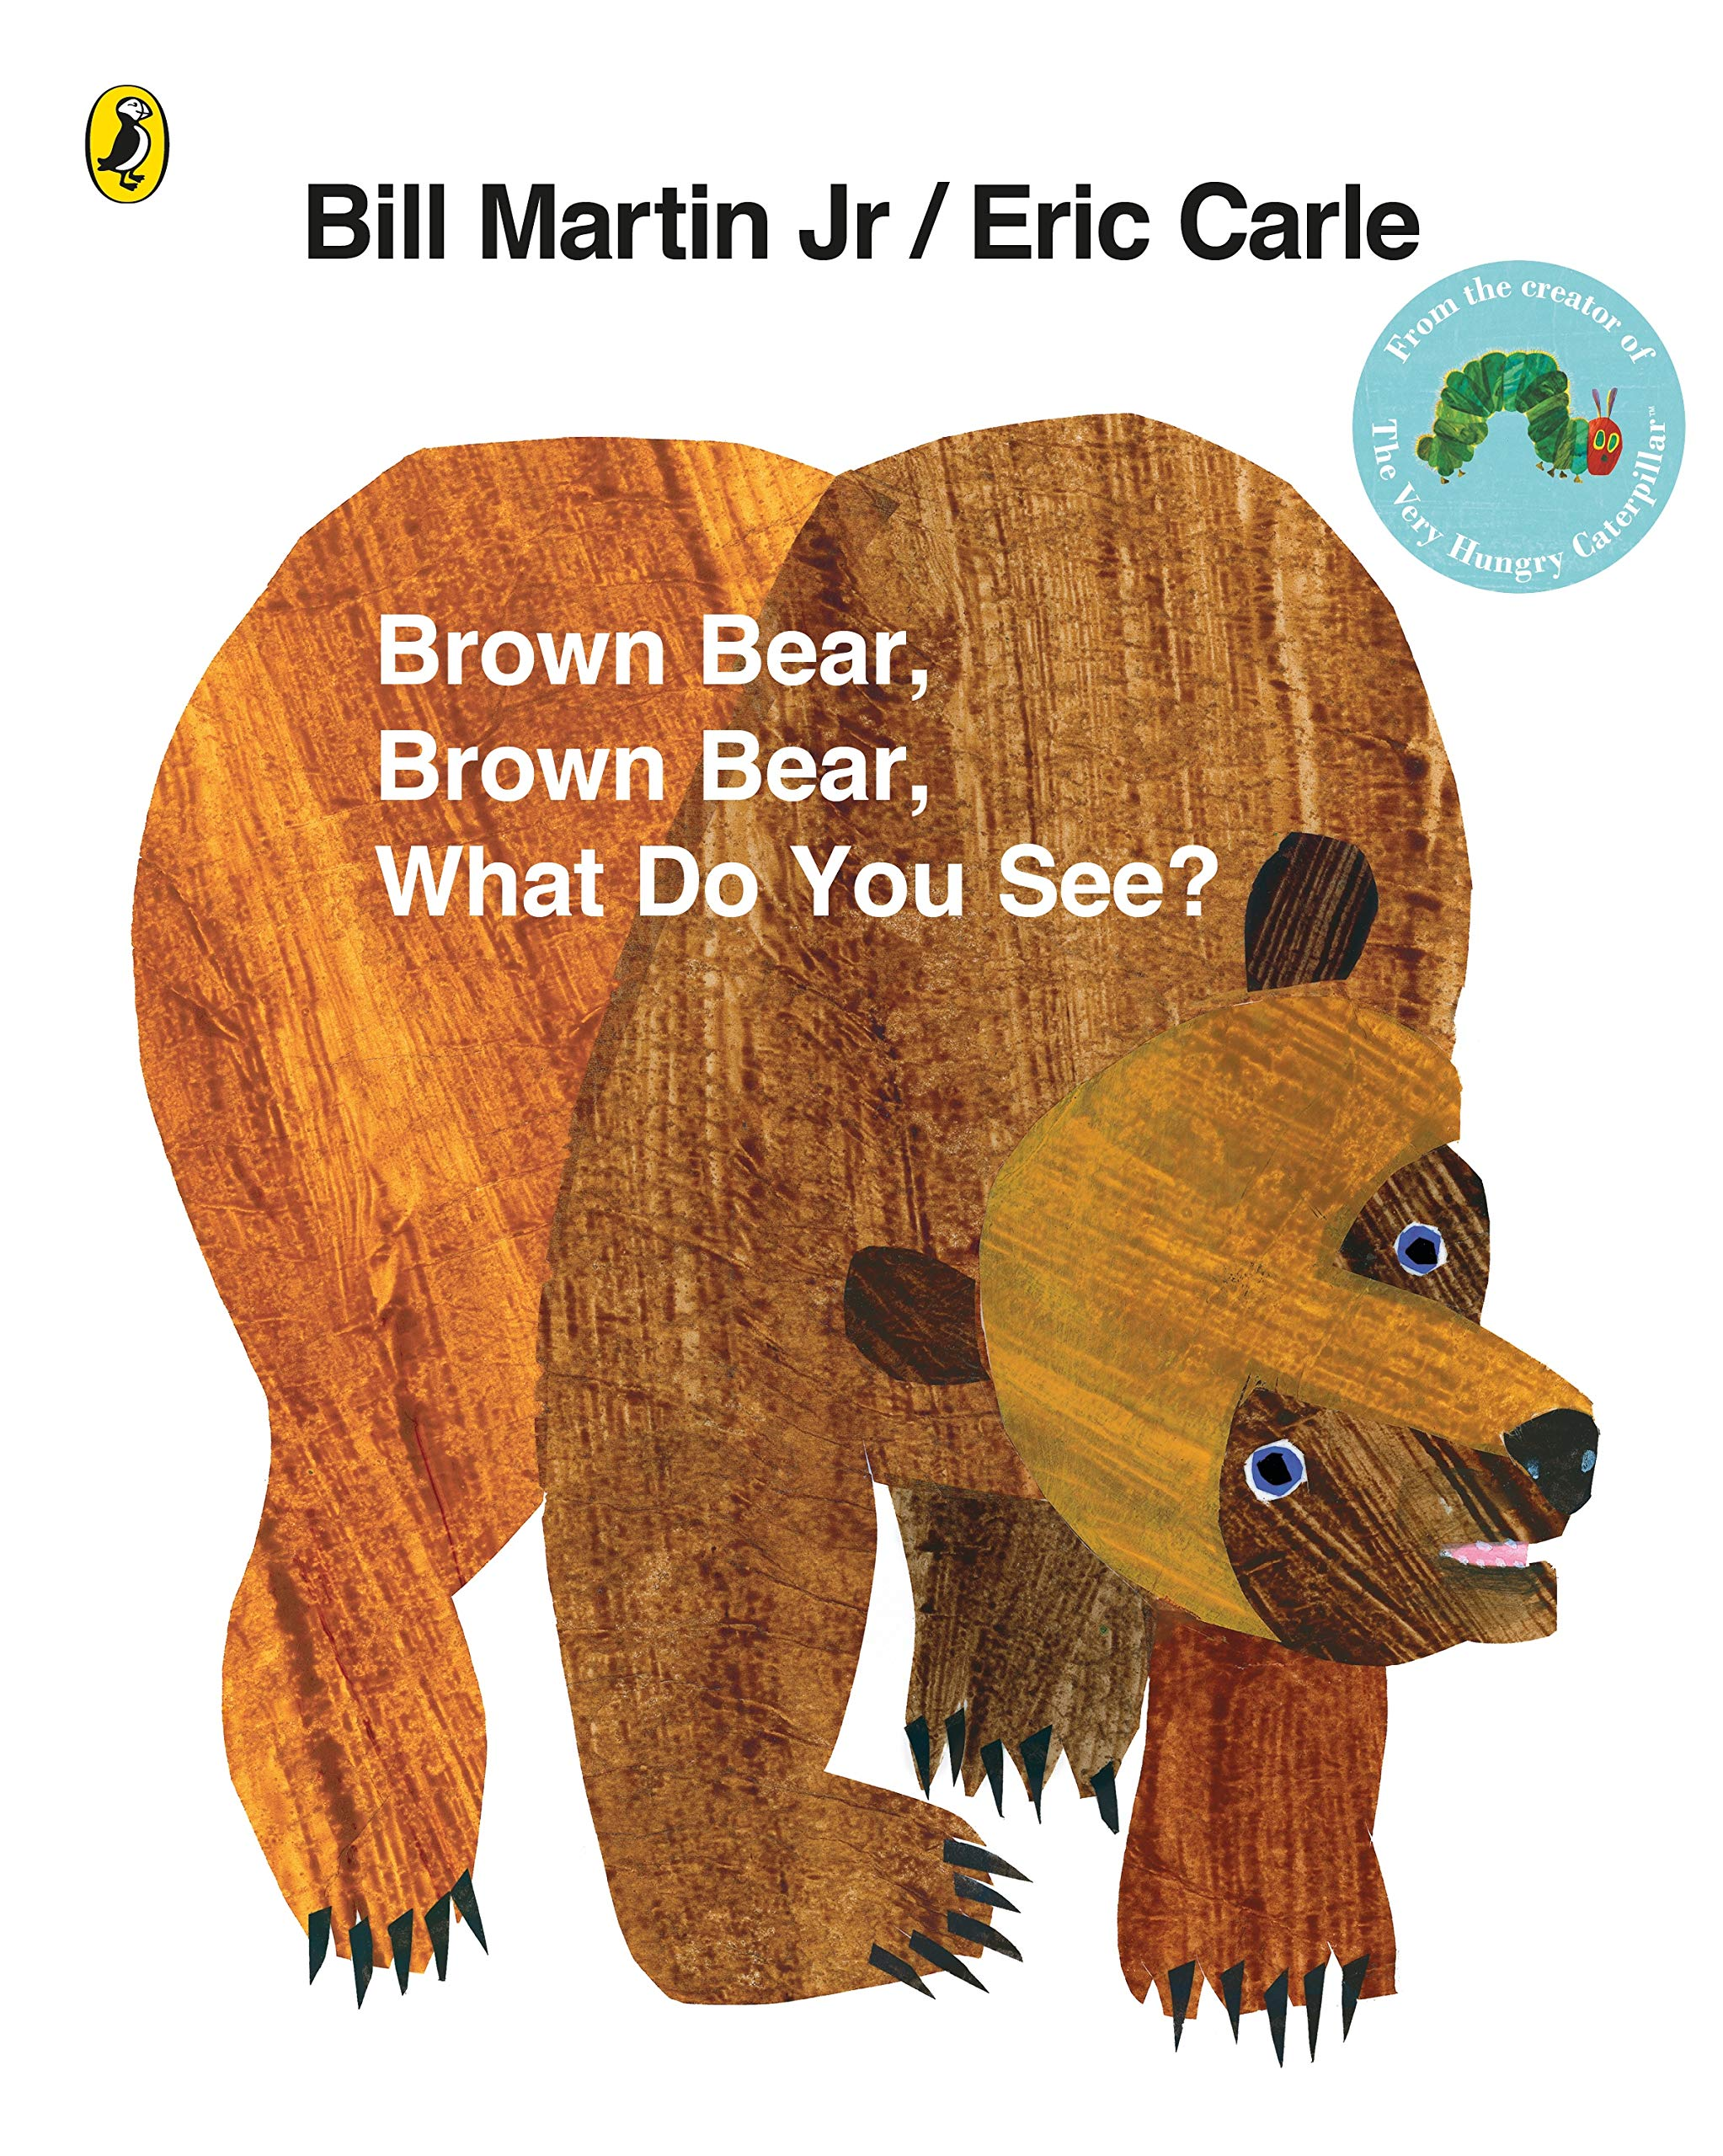 Brown Bear, Brown Bear, What Do You See?: Amazon.co.uk: Carle, Eric: Books